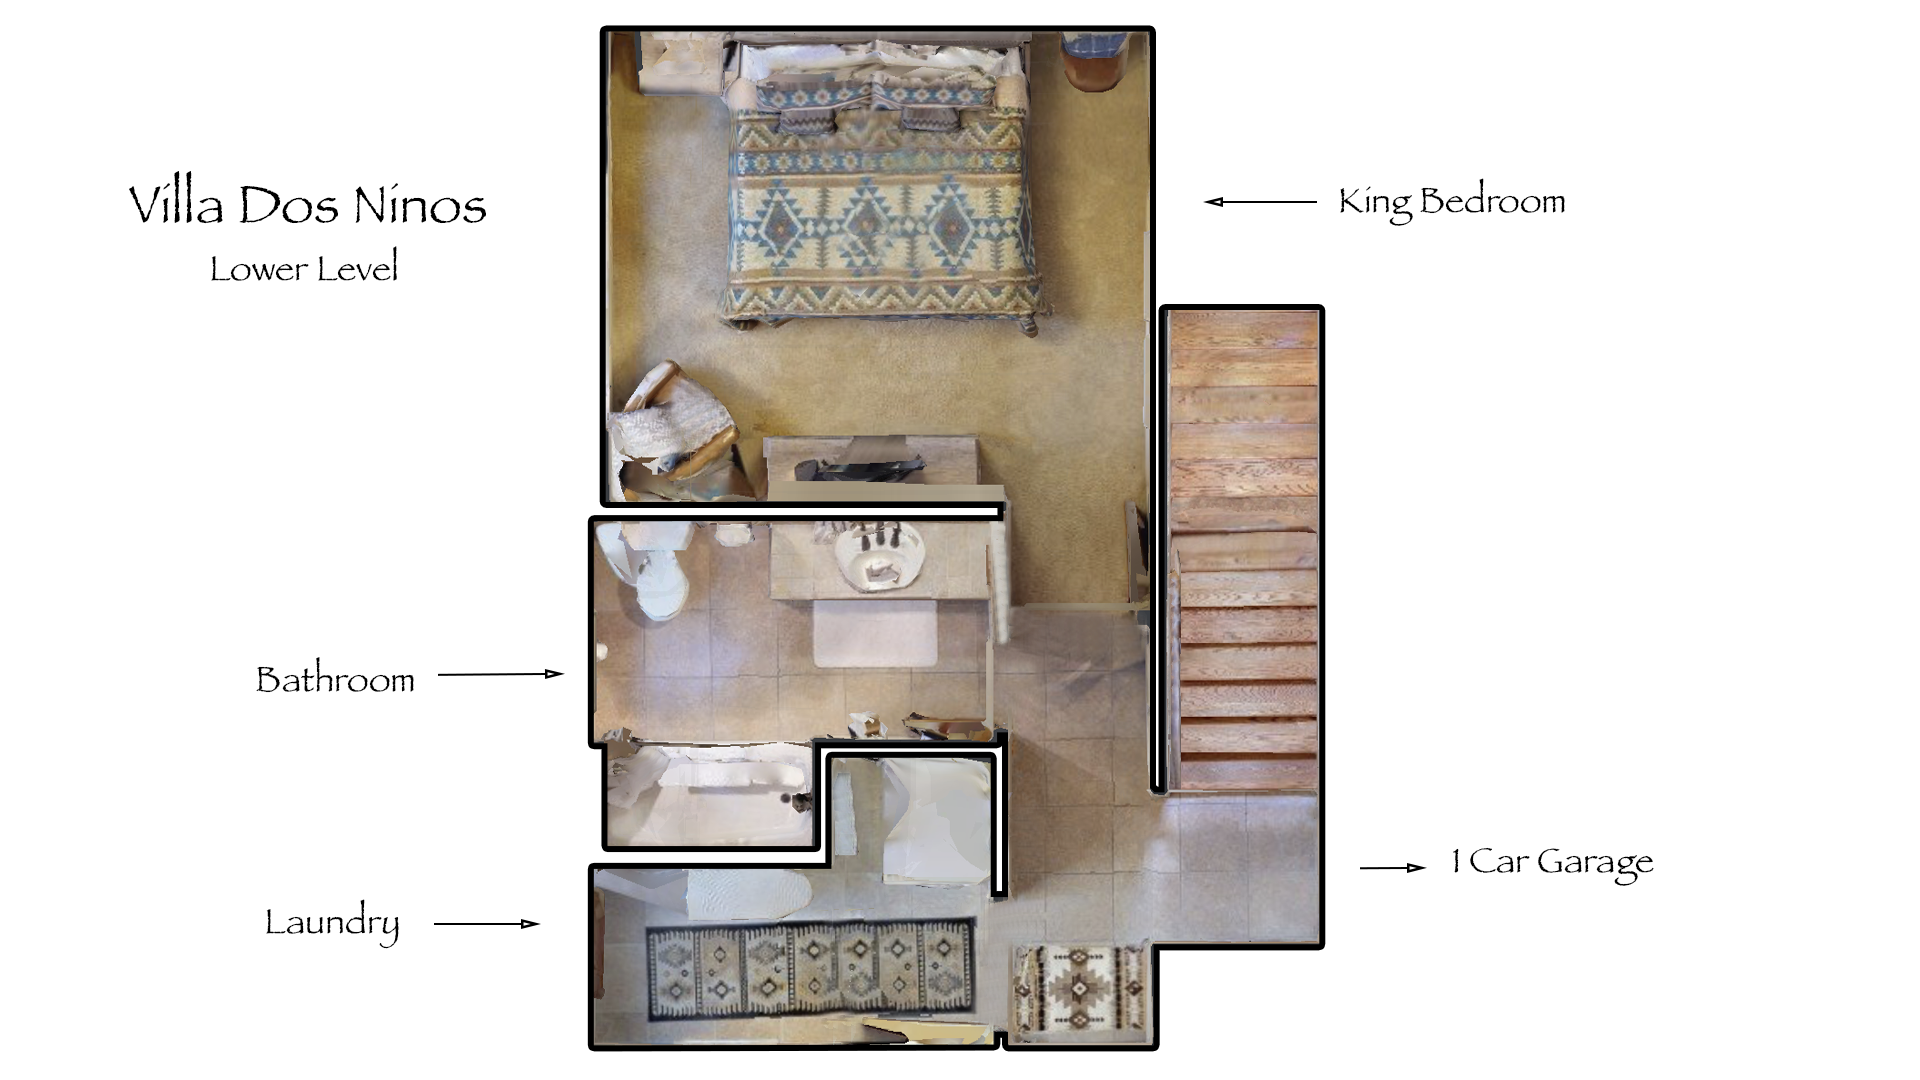 Floor Plan for Villa Dos Ninos